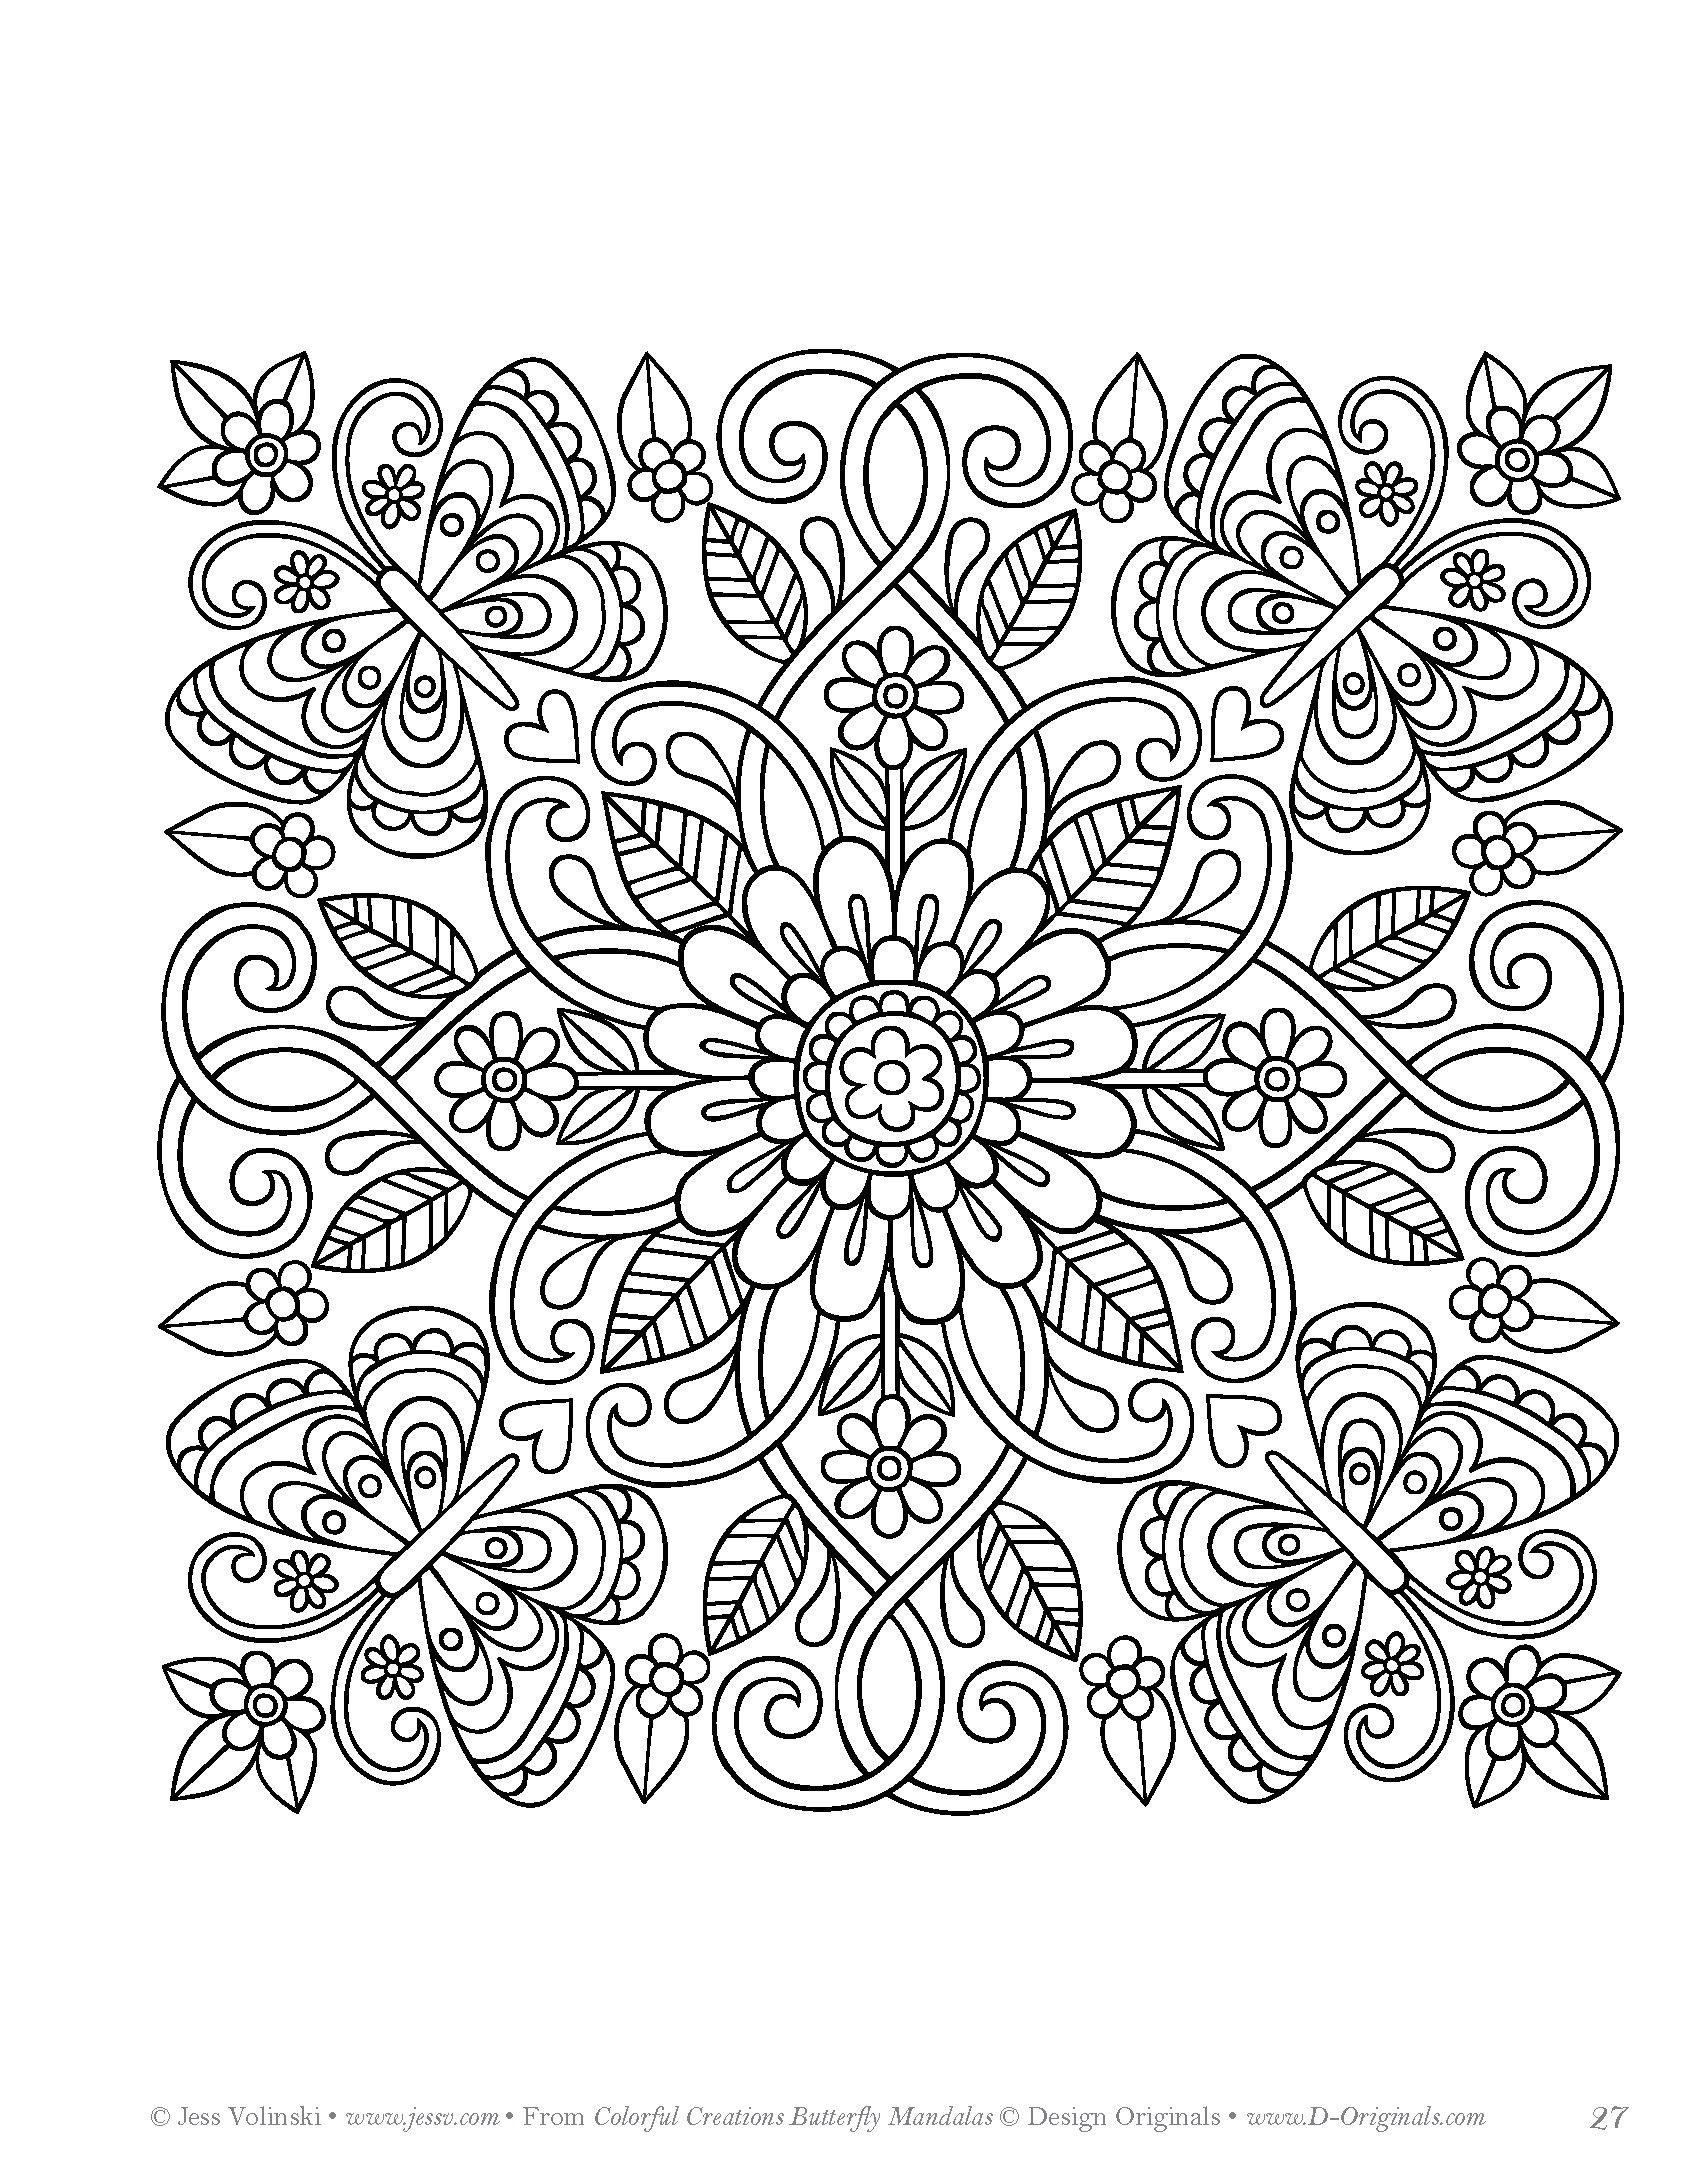 Colorful Creations Butterfly Mandalas Coloring Book Pages Designed To Inspire Creativity Amazoncouk Jess Volinski 9781497202610 Books